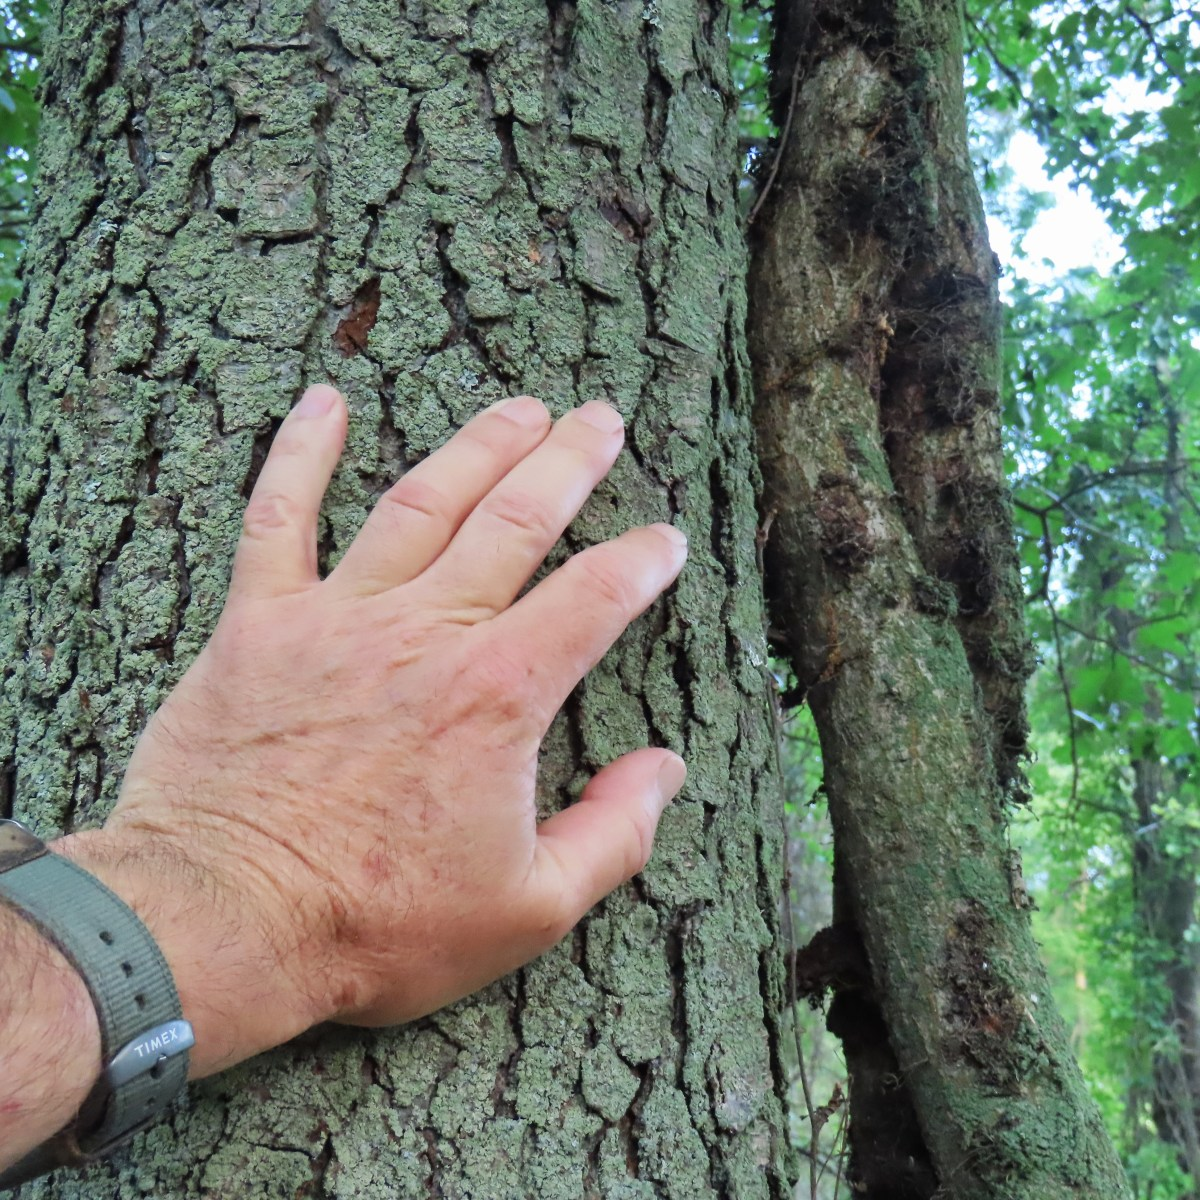 A thick poison ivy vine grows up a tree trunk